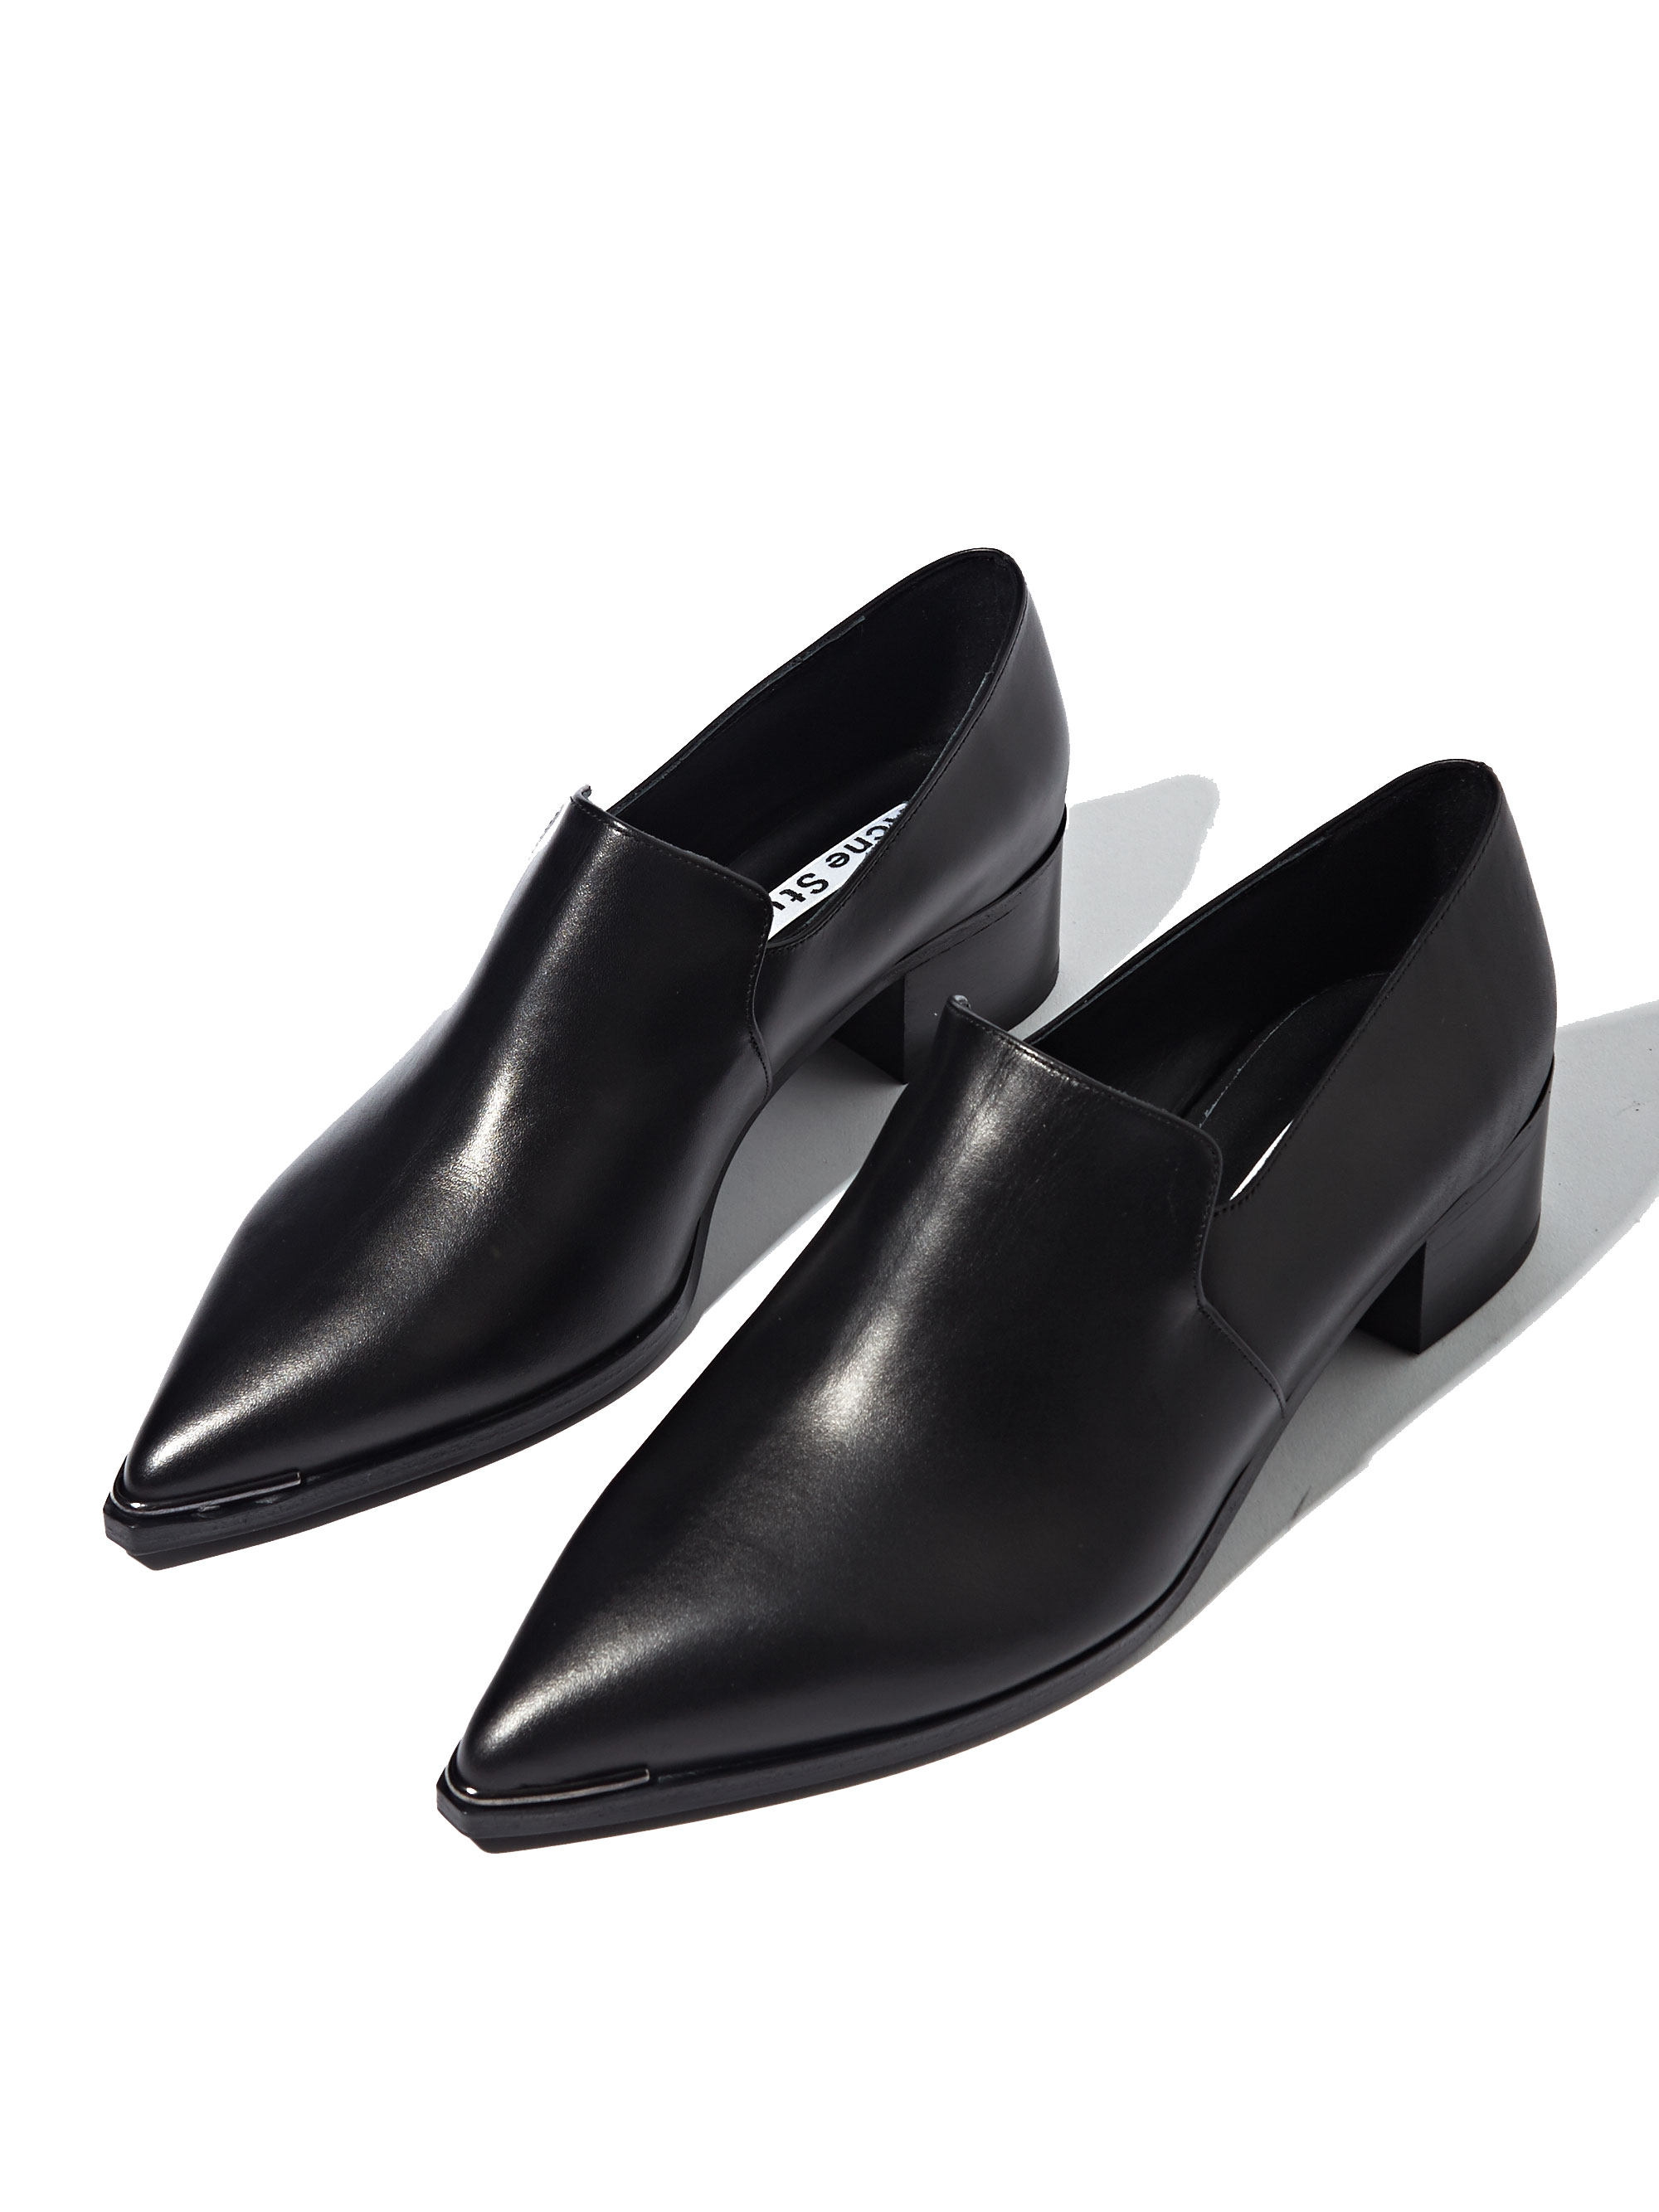 Lyst - Acne Studios Womens Jaycee Lamb Leather Loafer Shoes in Black